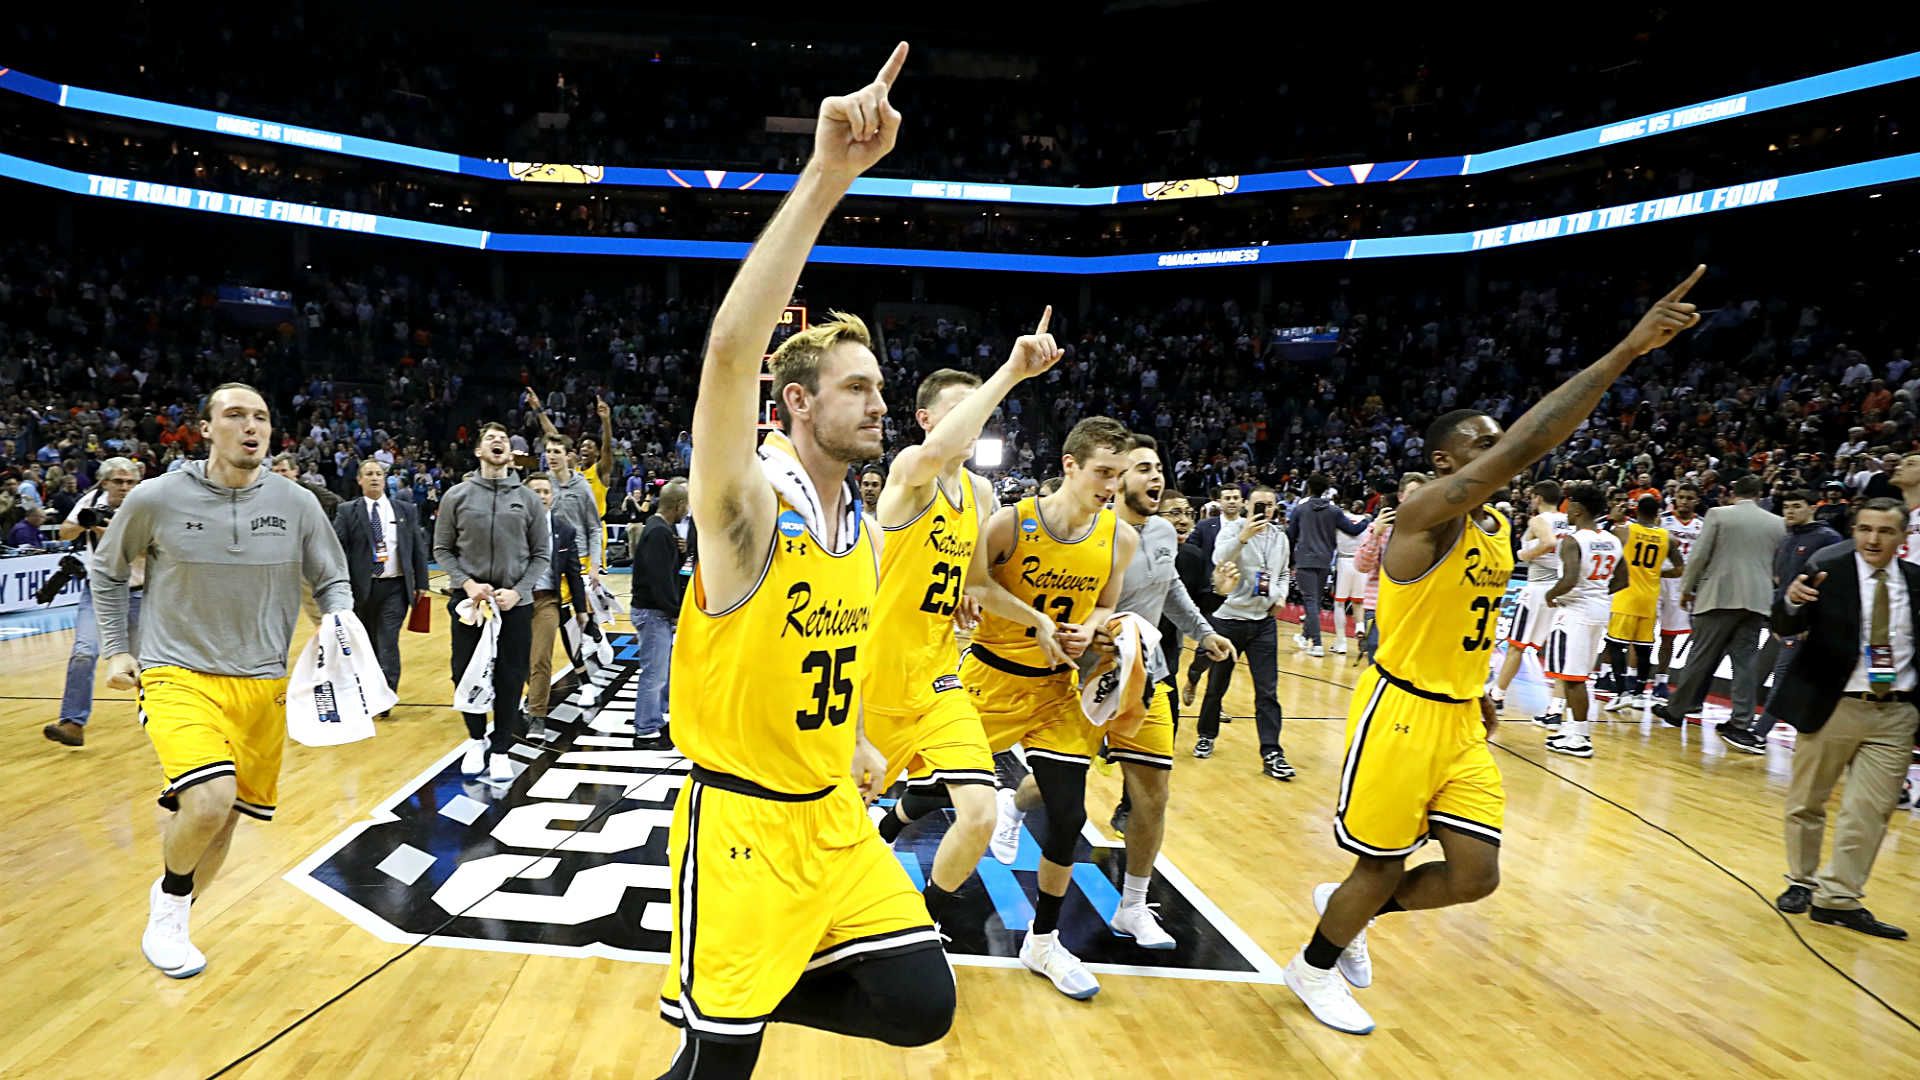 UMBC Virginia March Madness